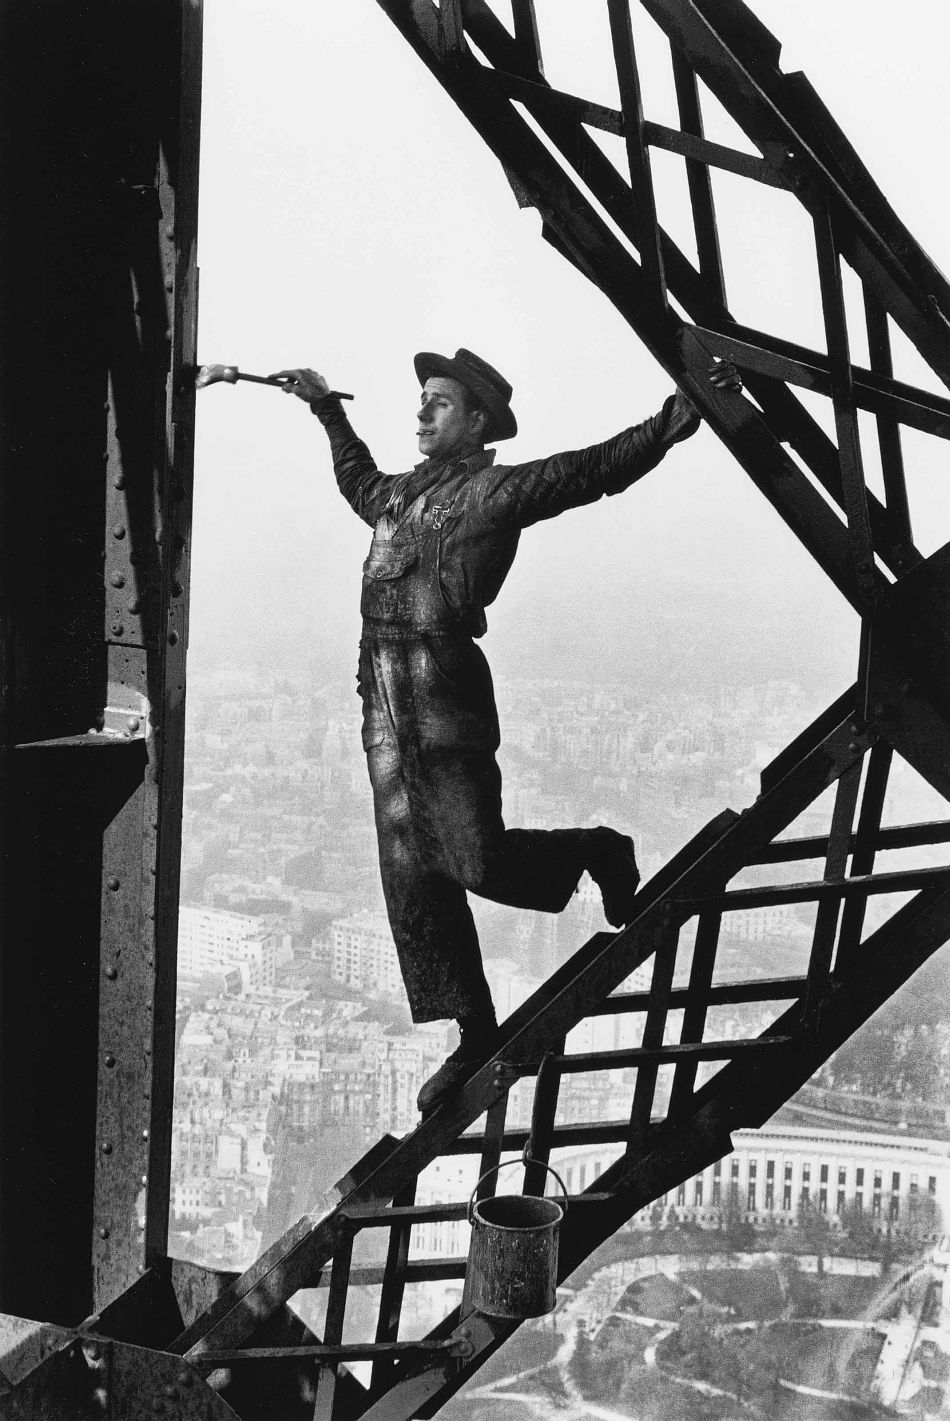 Marc Riboud: Painter of the Eiffel Tower, Paris 1953